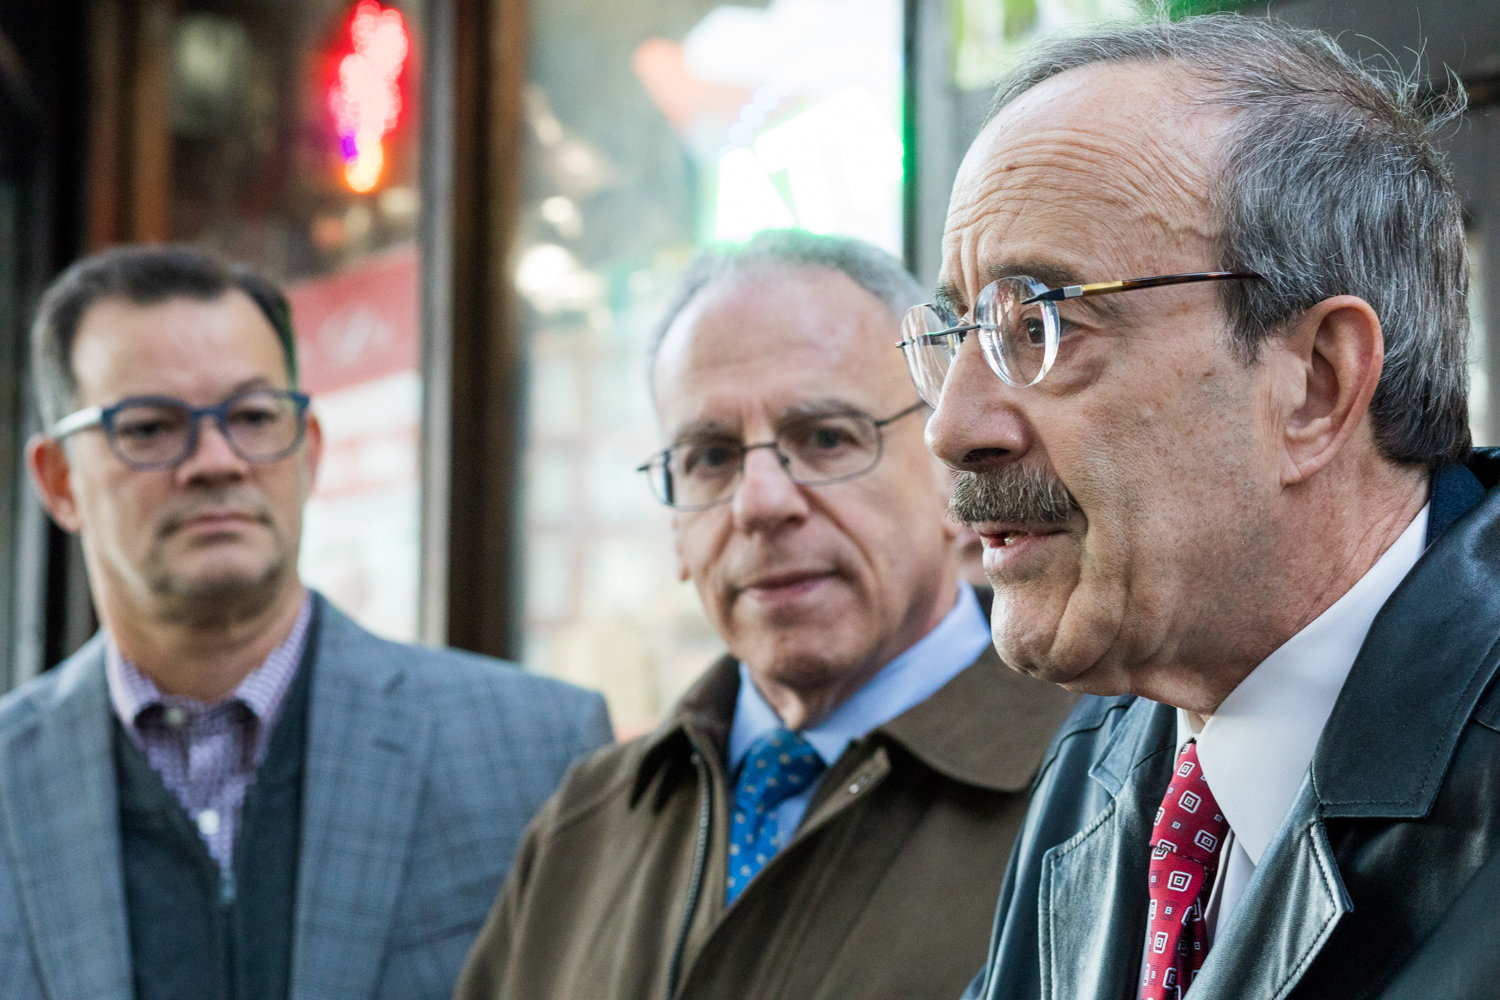 U.S. Rep. Eliot Engel speaks at a press conference outside of the Benjamin Franklin Reform Democratic Club about the need for the continuation of Robert Mueller's investigation into the Trump administration following the president's request for the resignation of Jeff Sessions, the former attorney general. The Ben Franklin Club convened the event on short notice, and brought together club members and elected officials, including Councilman Andrew Cohen, left, and Assemblyman Jeffrey Dinowitz.